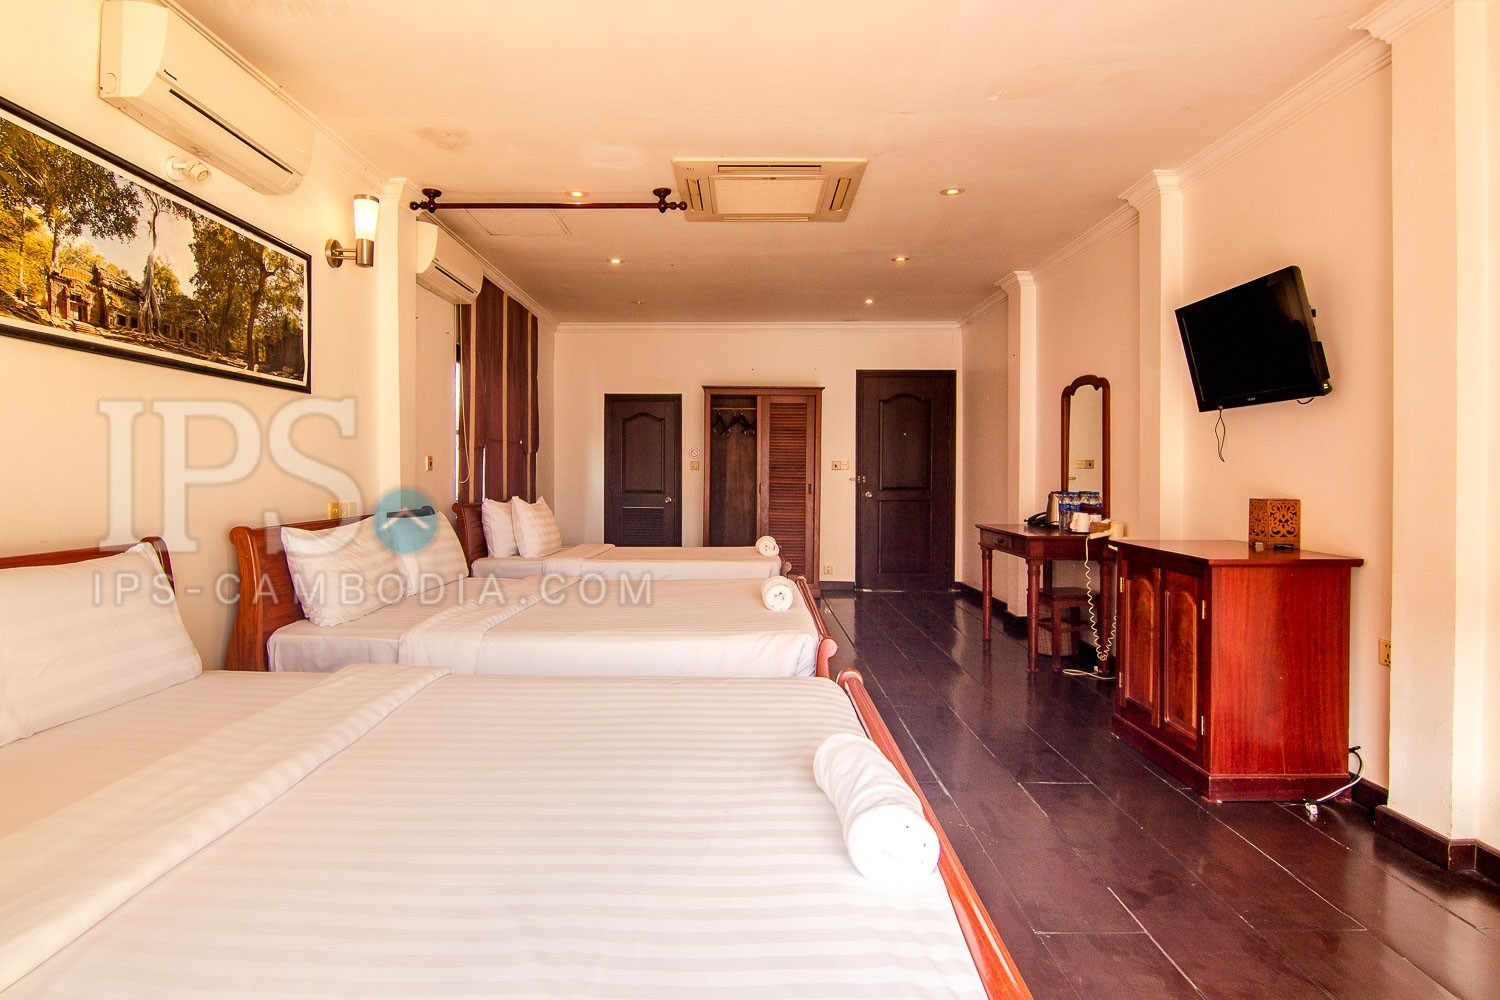 7 Bedroom Shophouse  For Rent - Old Market  Pub Street, Siem Reap